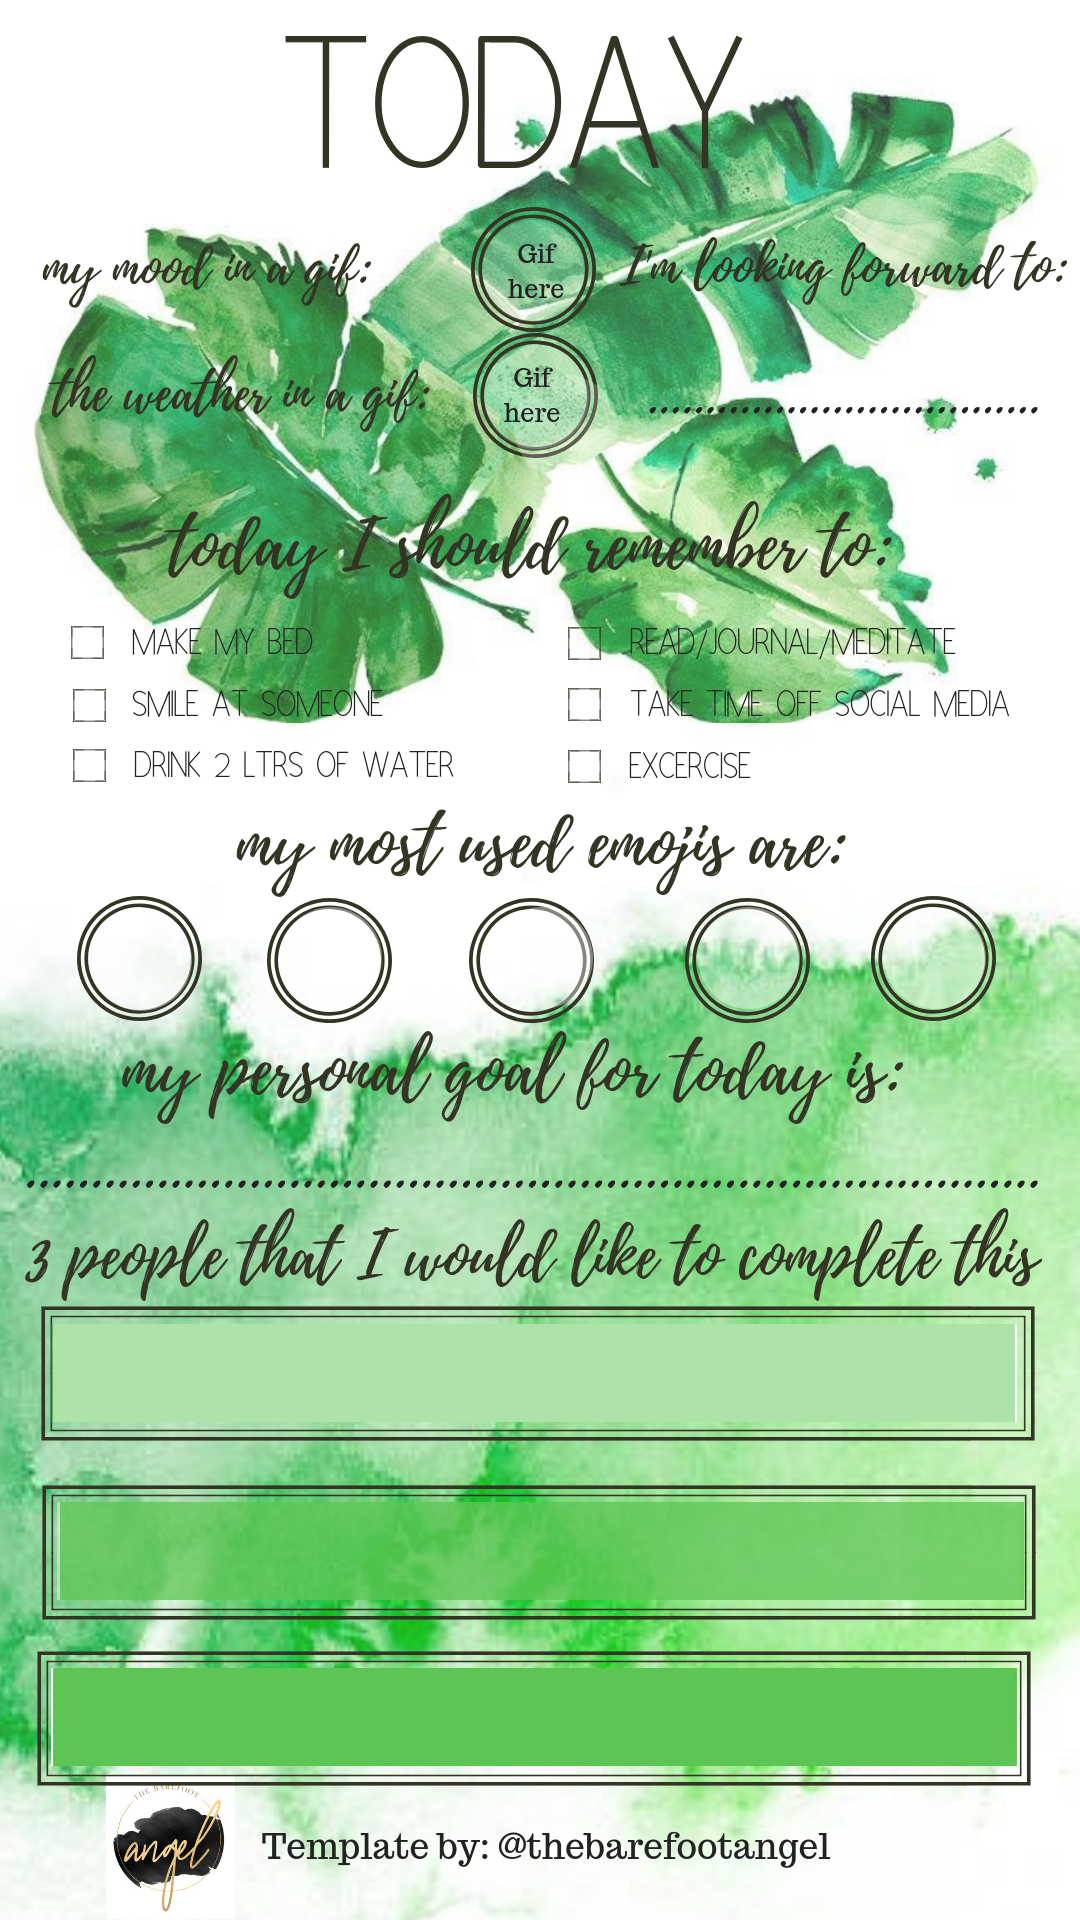 Insta-Story Templates from The Barefoot Angel